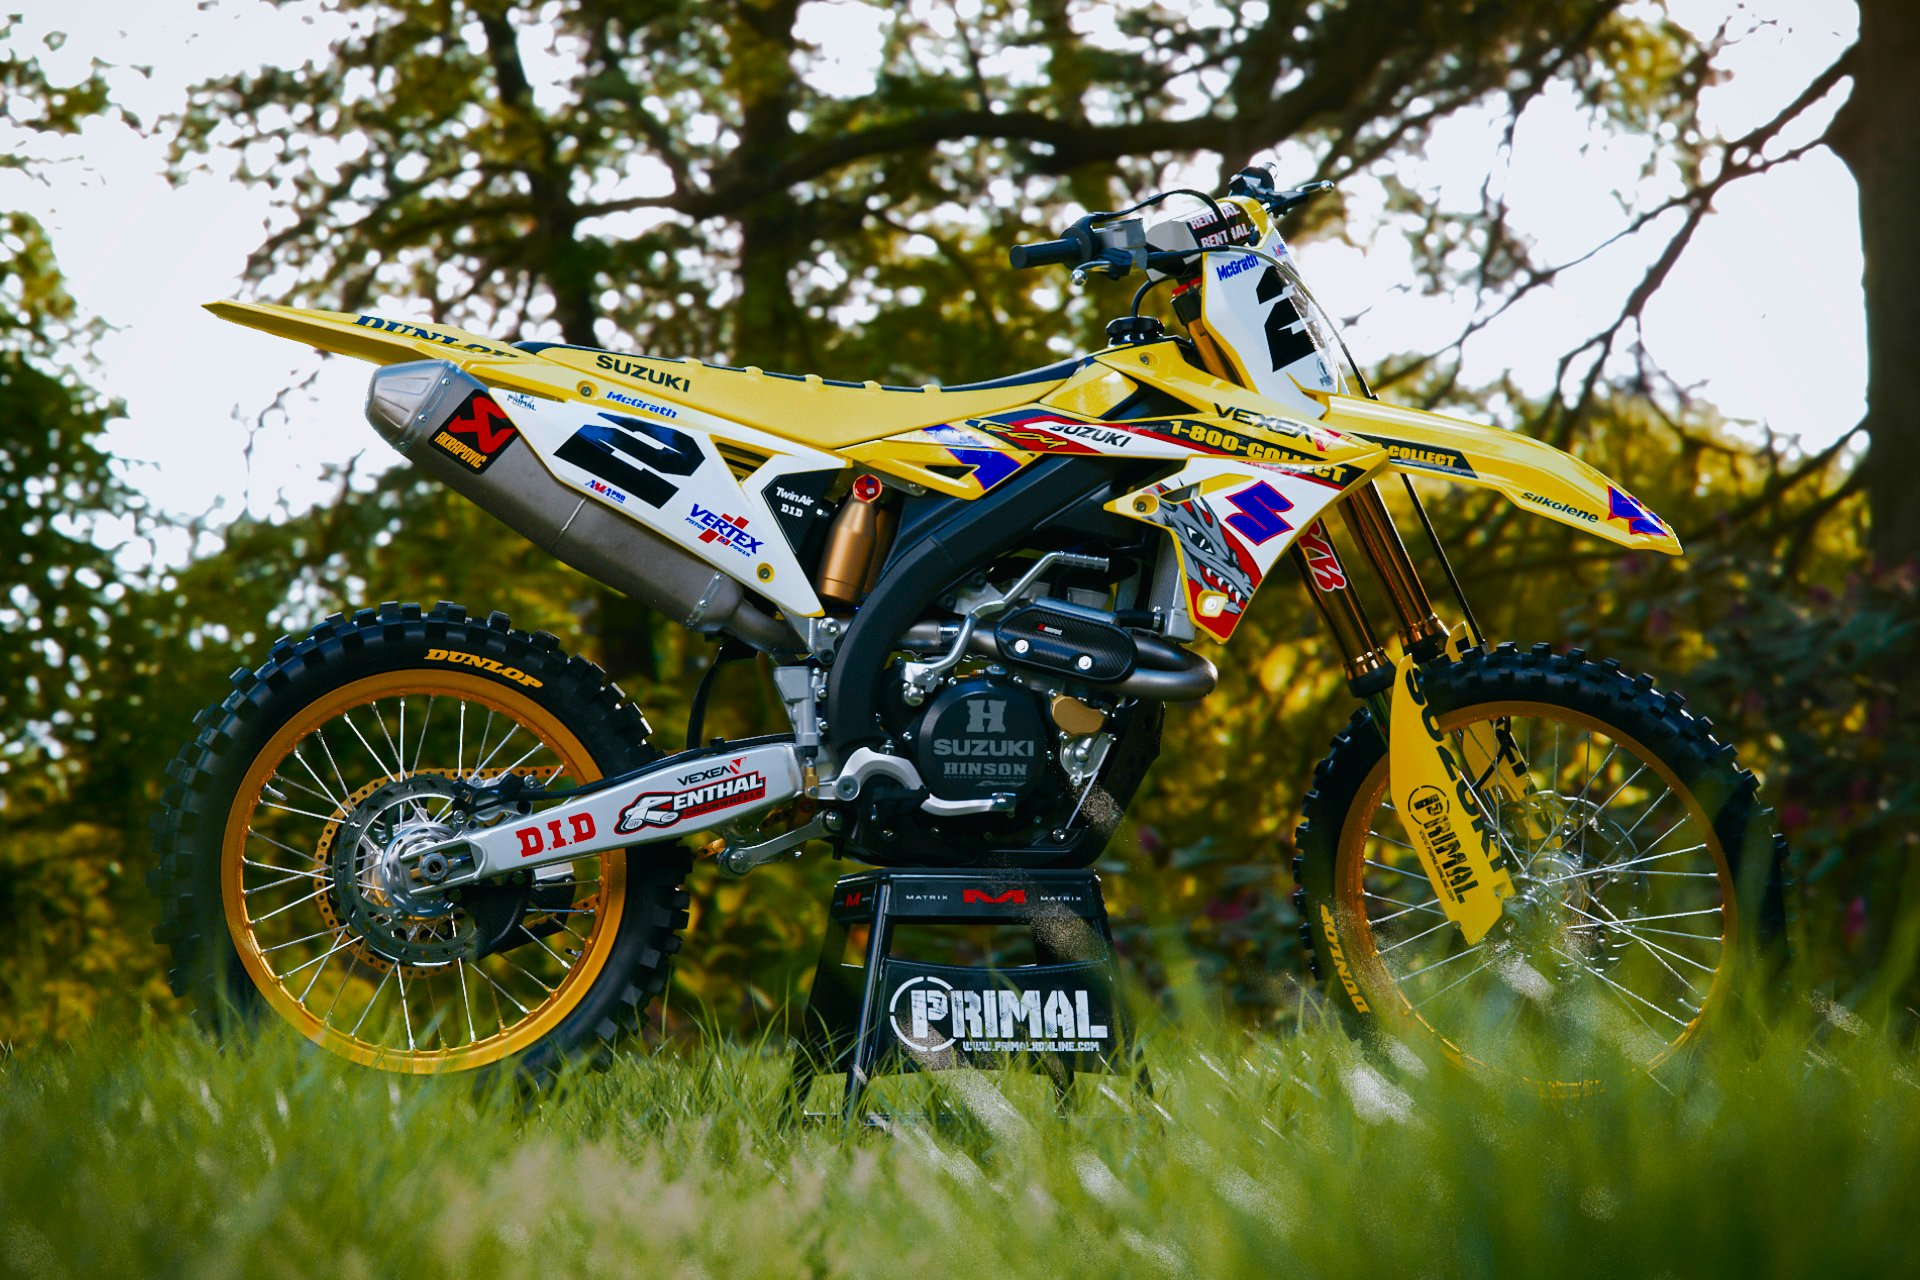 Suzuki Lt F Quadrunner Service Repair Manual also Primal X Motorsports Mx Graphics Mcgrath Replica Rmz together with Hqdefault as well Wdt further Maxresdefault. on 1990 suzuki 250 atv